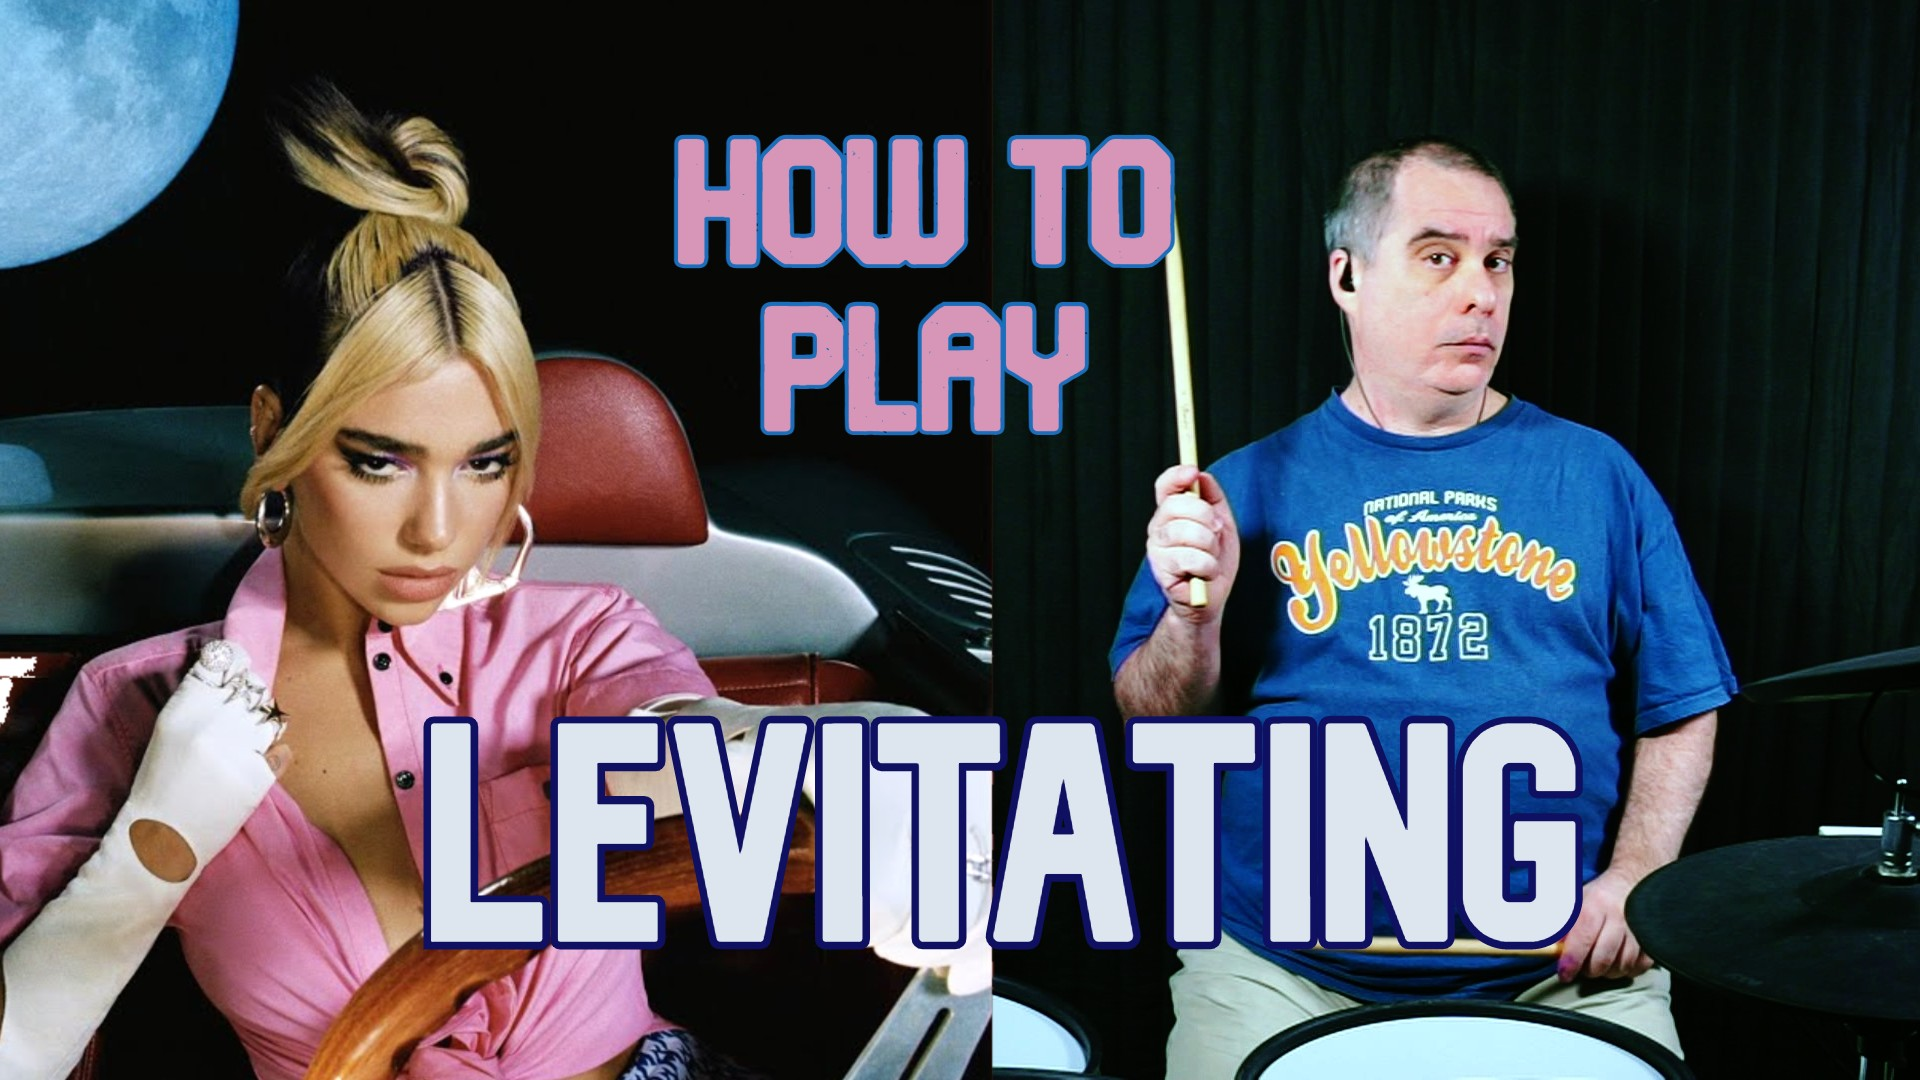 How To Play Dua Lipa's Levitating on drums